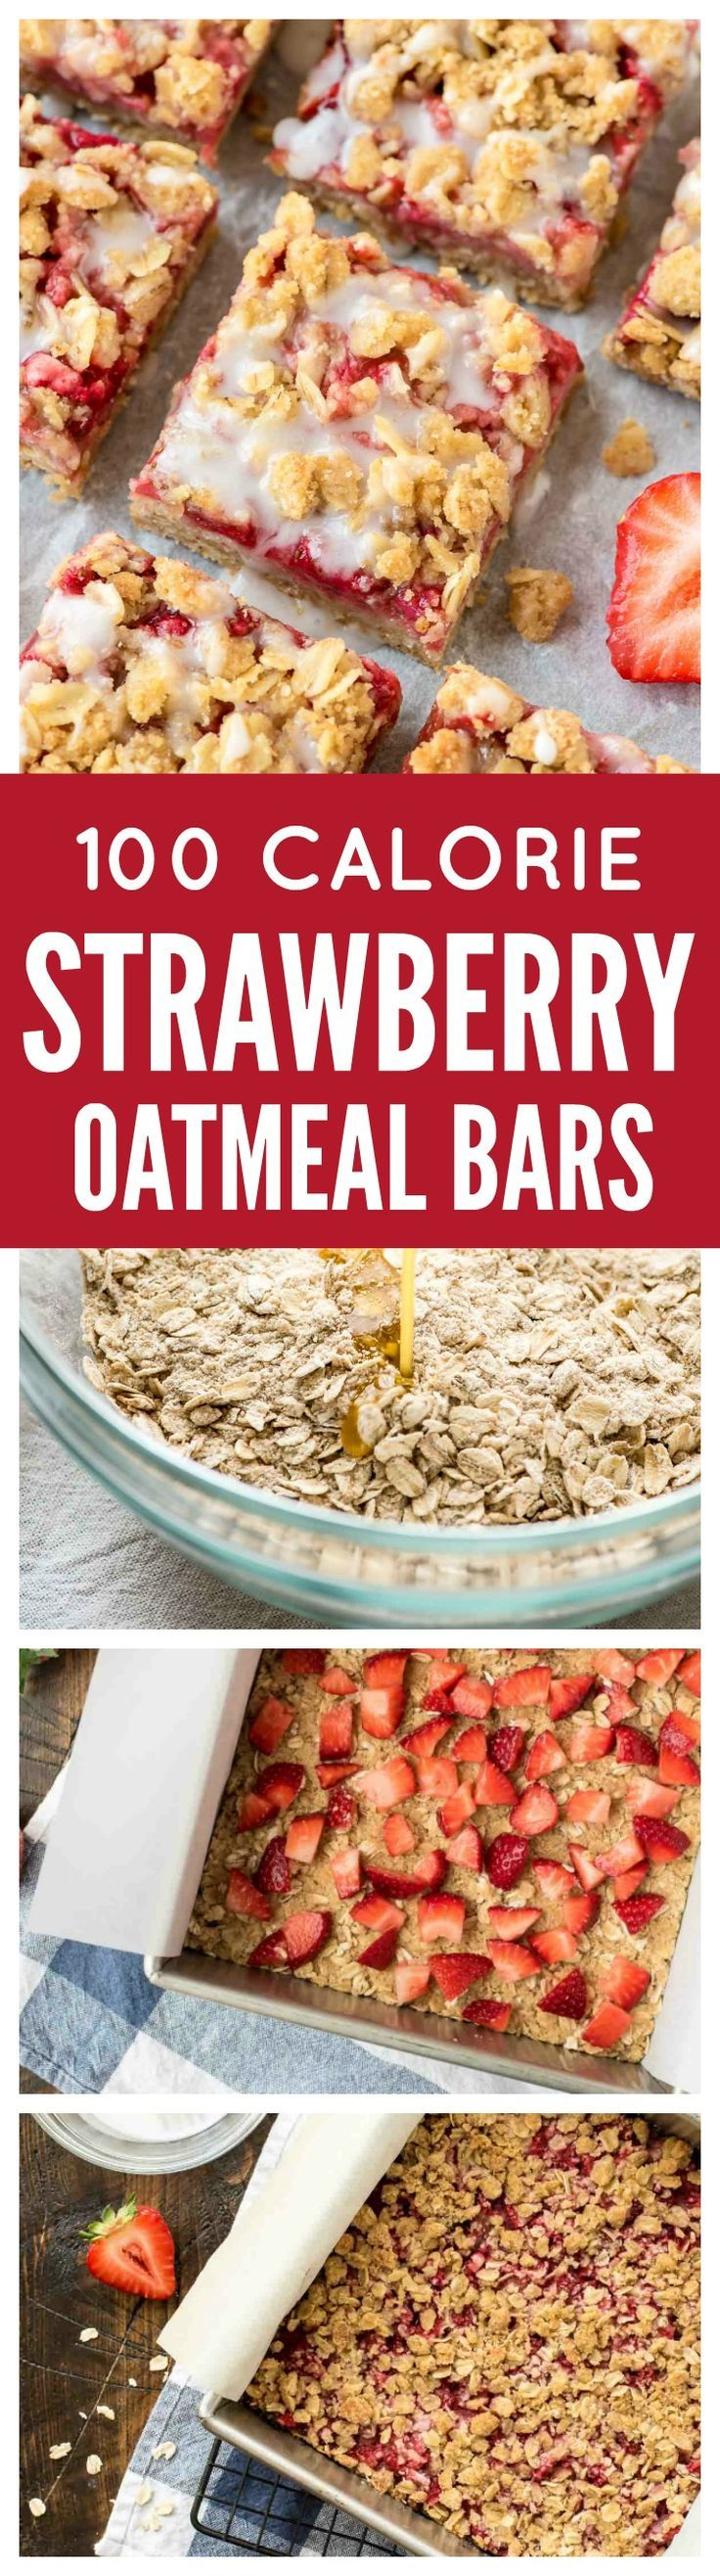 These buttery Strawberry Oatmeal Bars are only 100 CALORIES EACH!! With a buttery crust, sweet strawberry filling, and delicious crumb topping, they make wonderful dessert bars to take to a party or potluck but are healthy enough for a snack. So easy even kids can make them! @wellplated www.wellplated.com